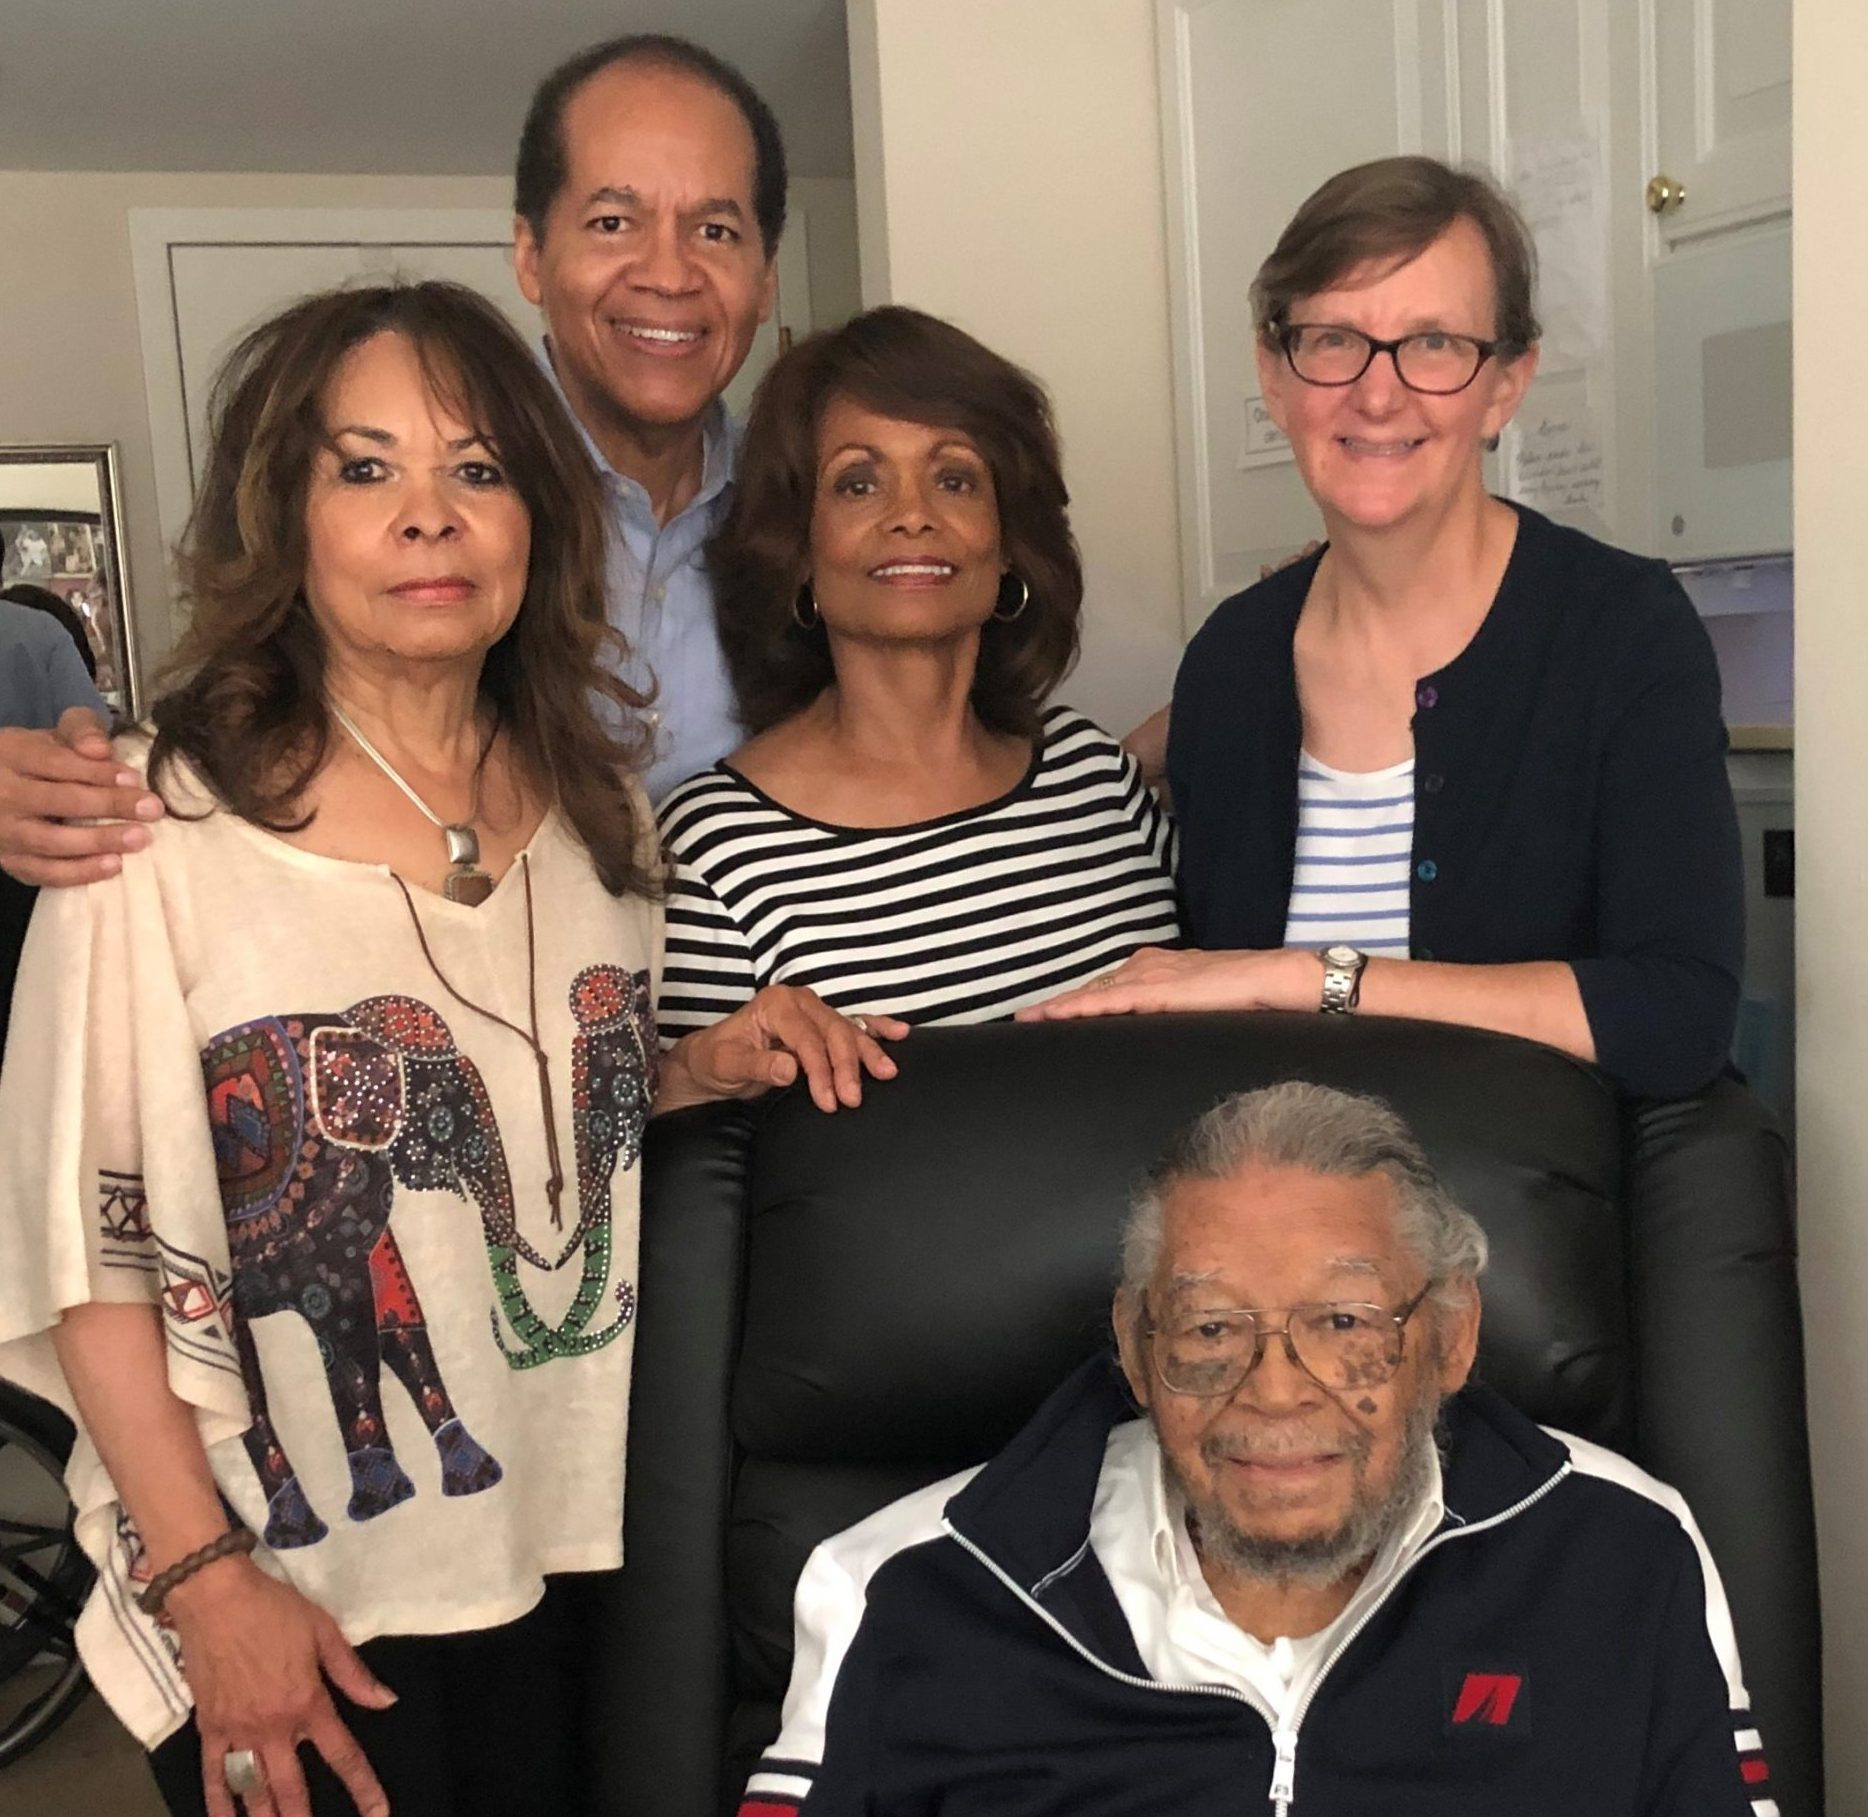 Nelson (seated) with family and LAAW attorney Elizabeth Kristen